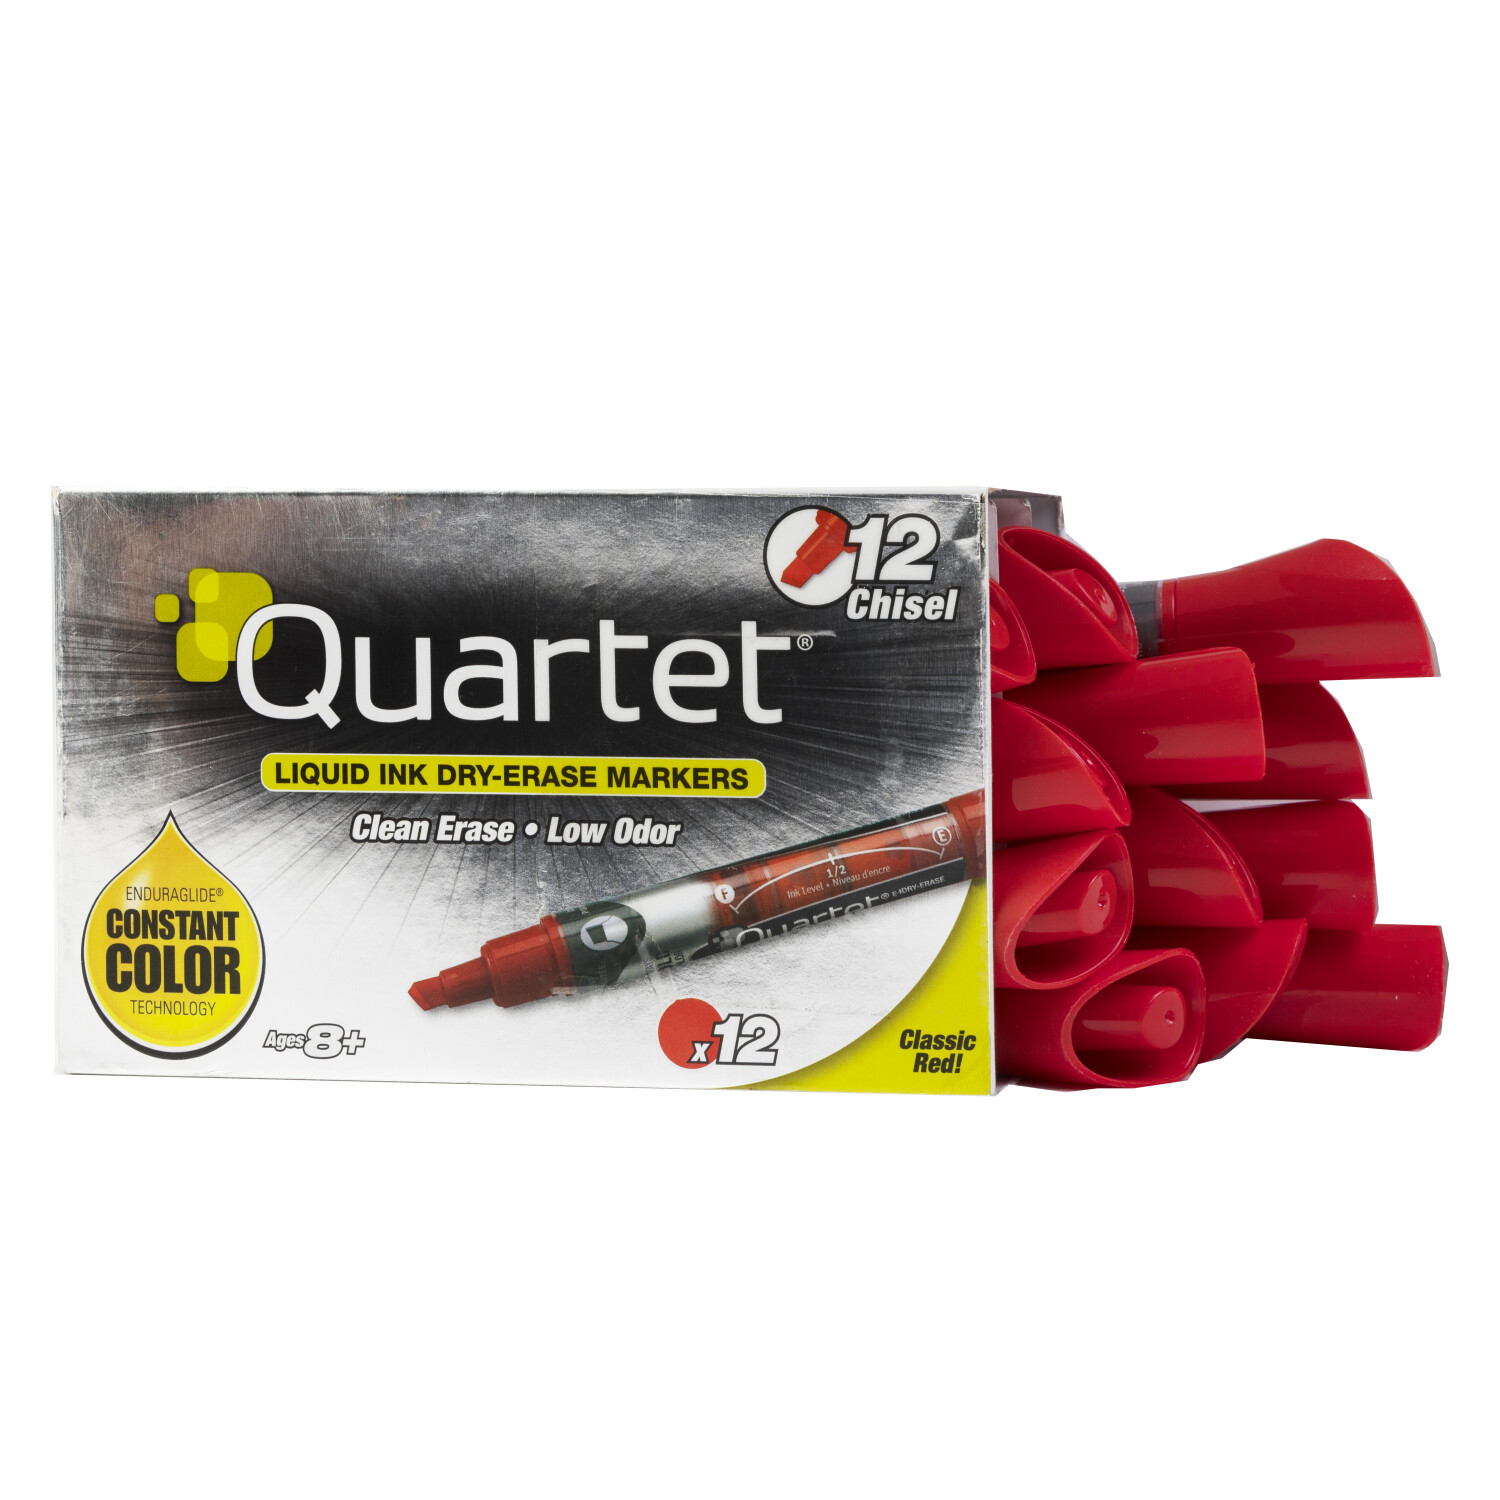 Quartet Liquid Ink Dry-Erase Markers Low Odor Box of 12 Red with Constant Color Technology - Red